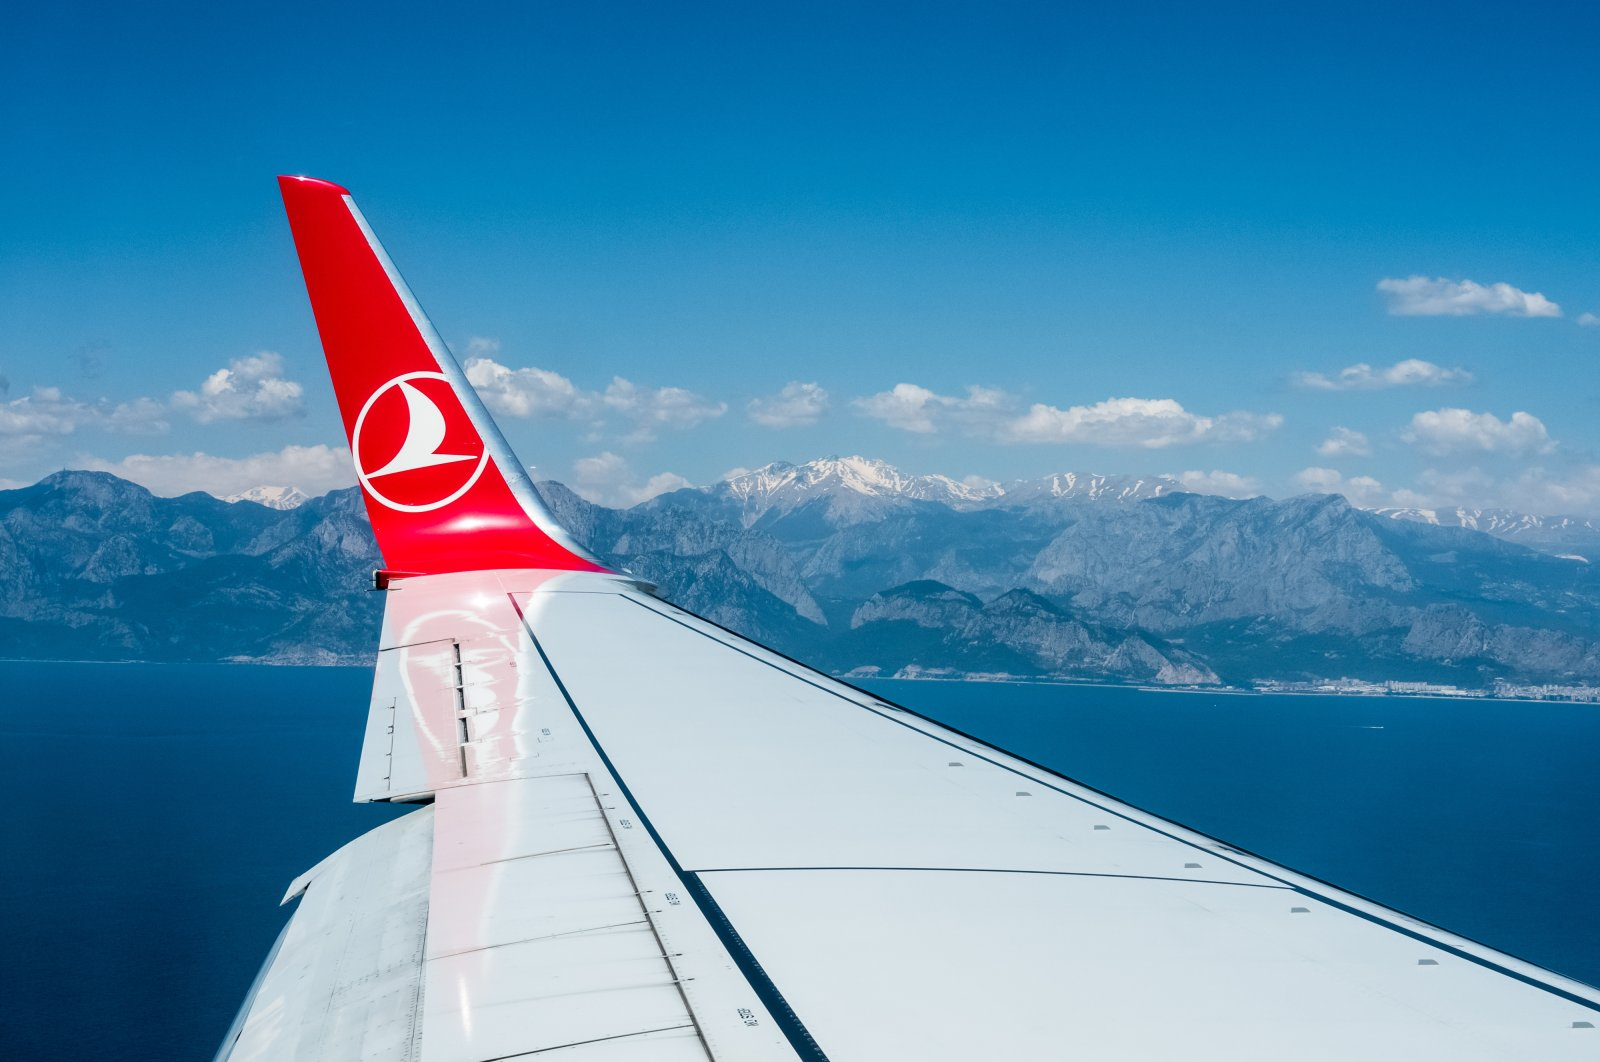 Mountains with snowy peaks seen from the window of the Turkish Airlines aircraft in this file photo from May 2019, Antalya, Turkey. (Shutterstock Photo by Tatiana Zolotareva )